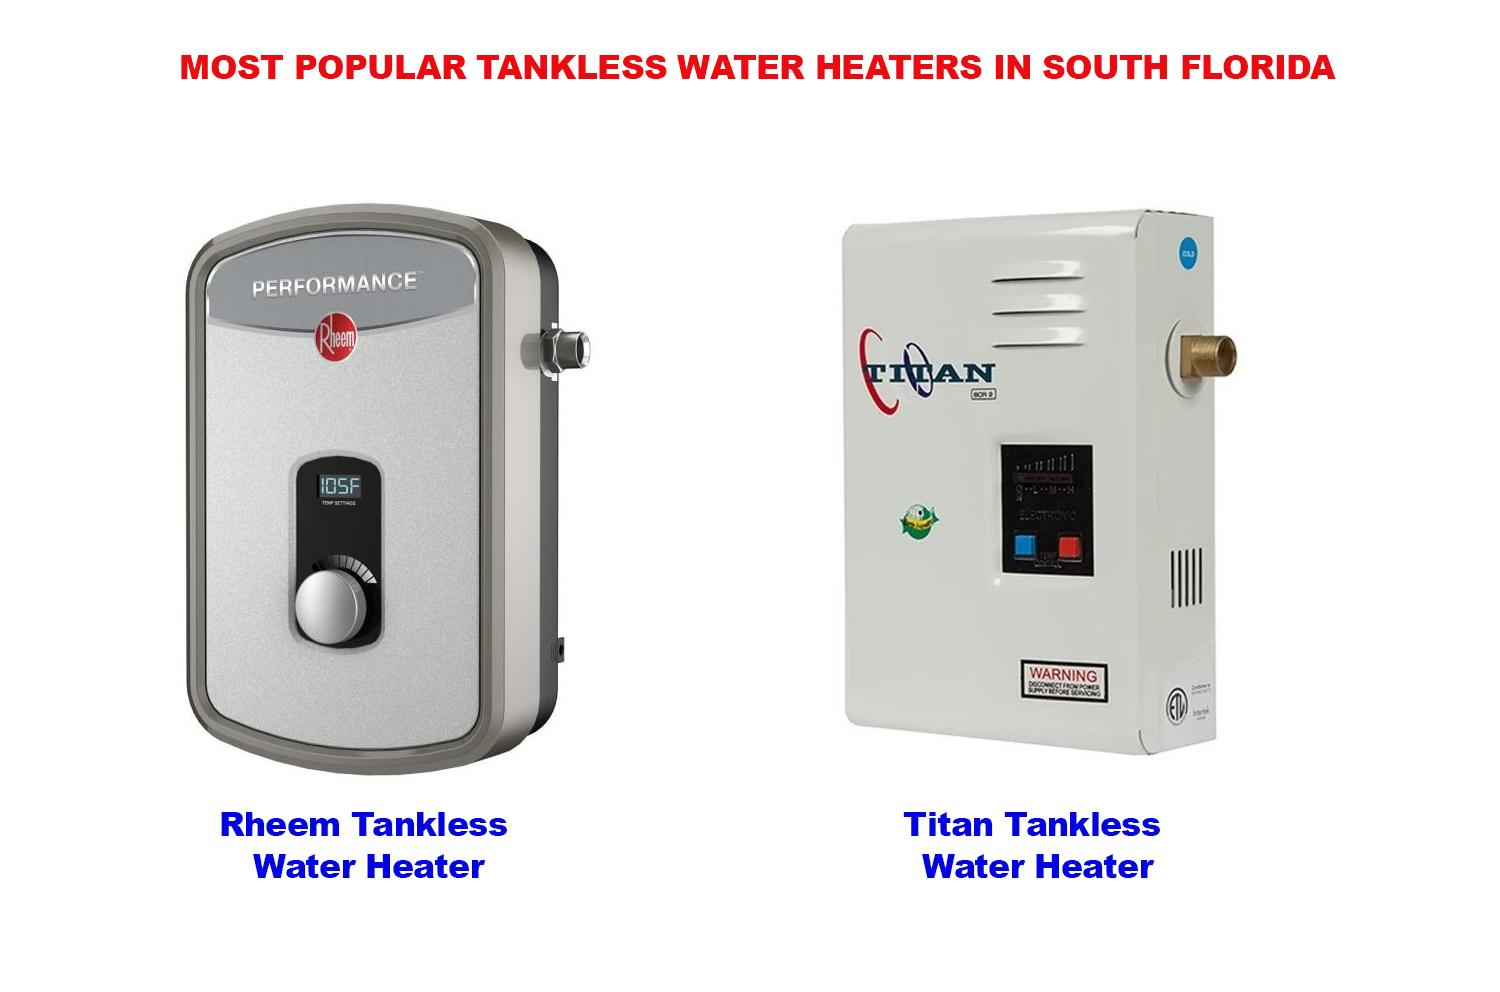 Most Popular Tankless Water Heaters in Broward, Miami and Palm Beach